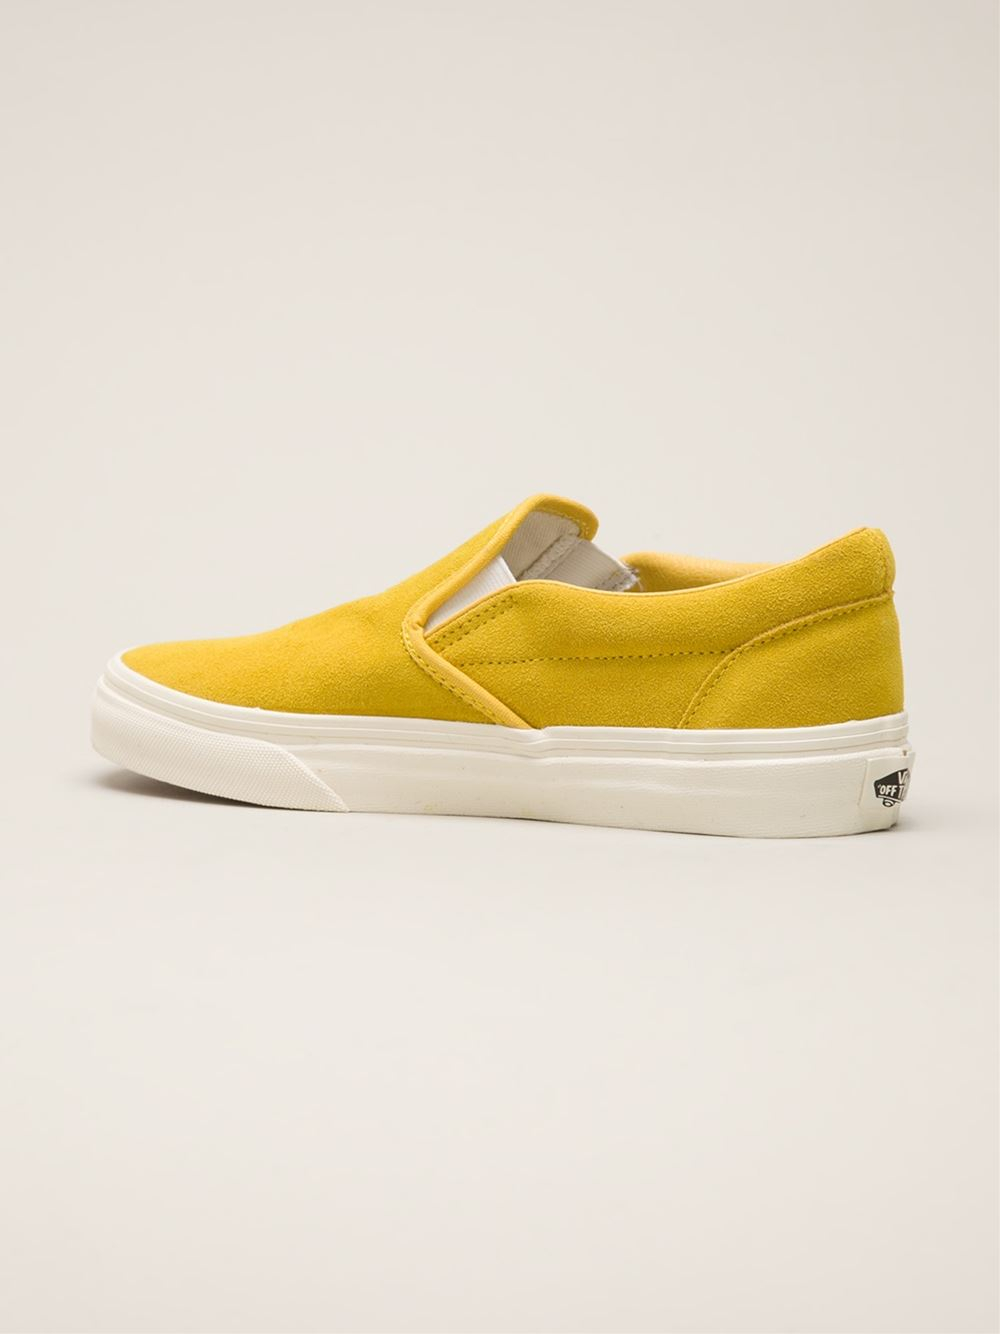 Vans Classic Slip On Trainers in Yellow